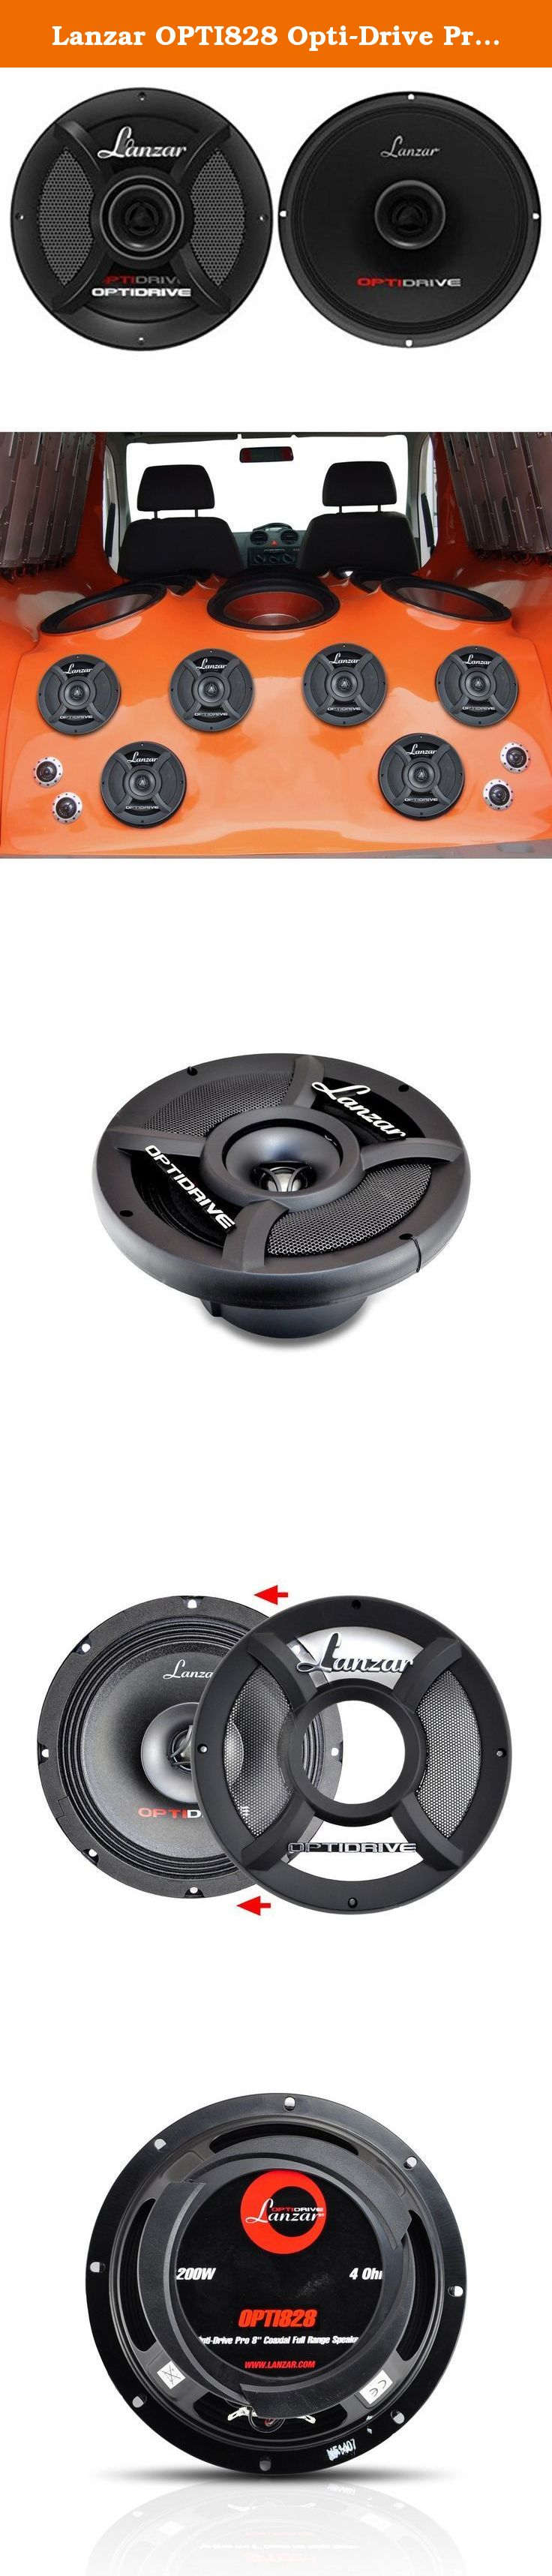 """OPTI828 Powerful 1200 Watts 8 Ohms Paper Cone w// 70Hz Lanzar Upgraded Opti-Drive Pro 8/"""" Coaxial Car Speaker 22 KHz Frequency Response and 55 Oz Magnet Structure Full Range Subwoofer"""